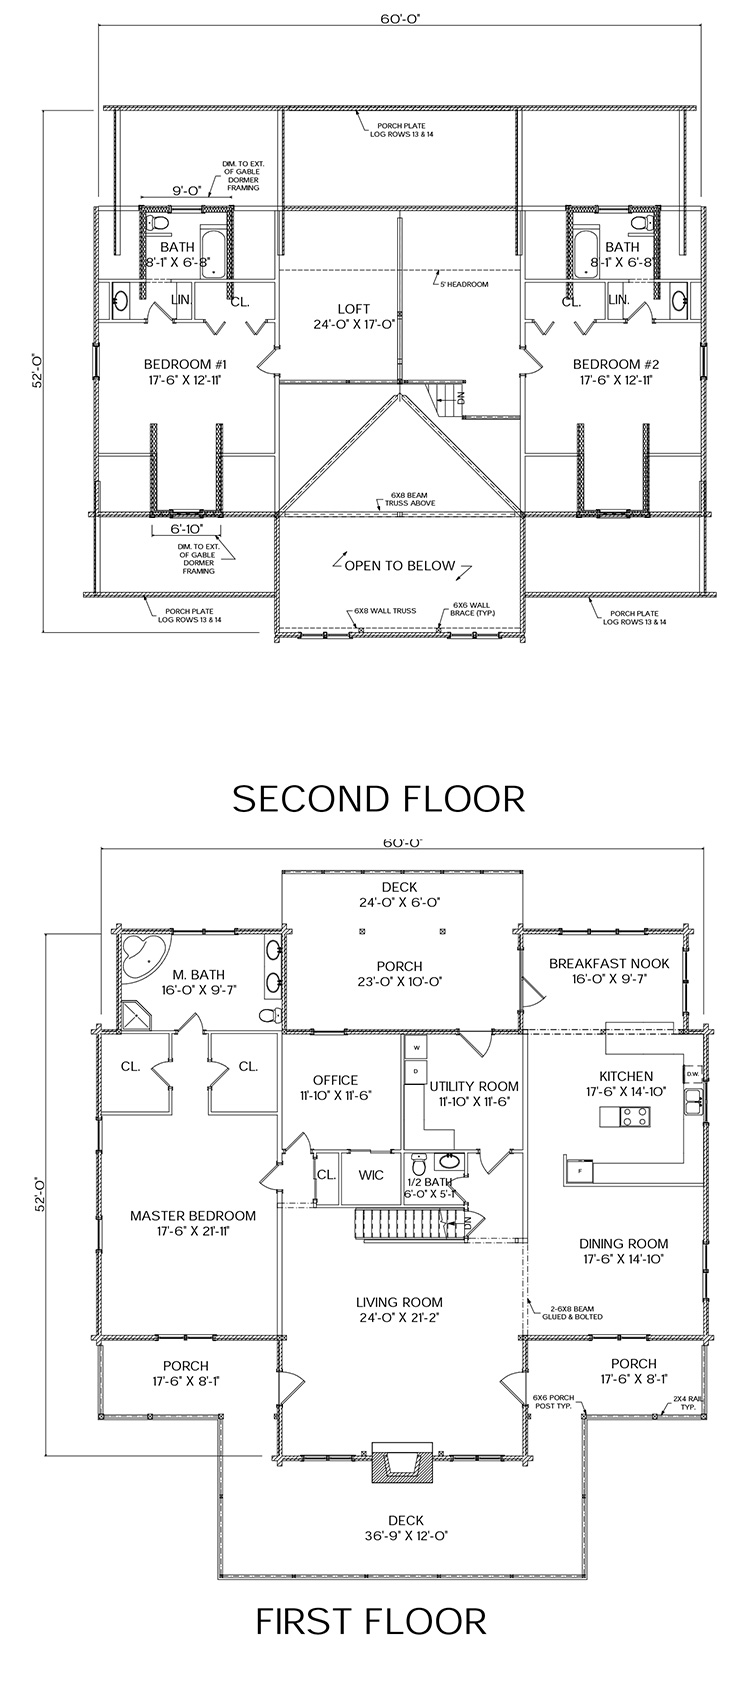 bridgewater log home floor plan from nh log cabin homes